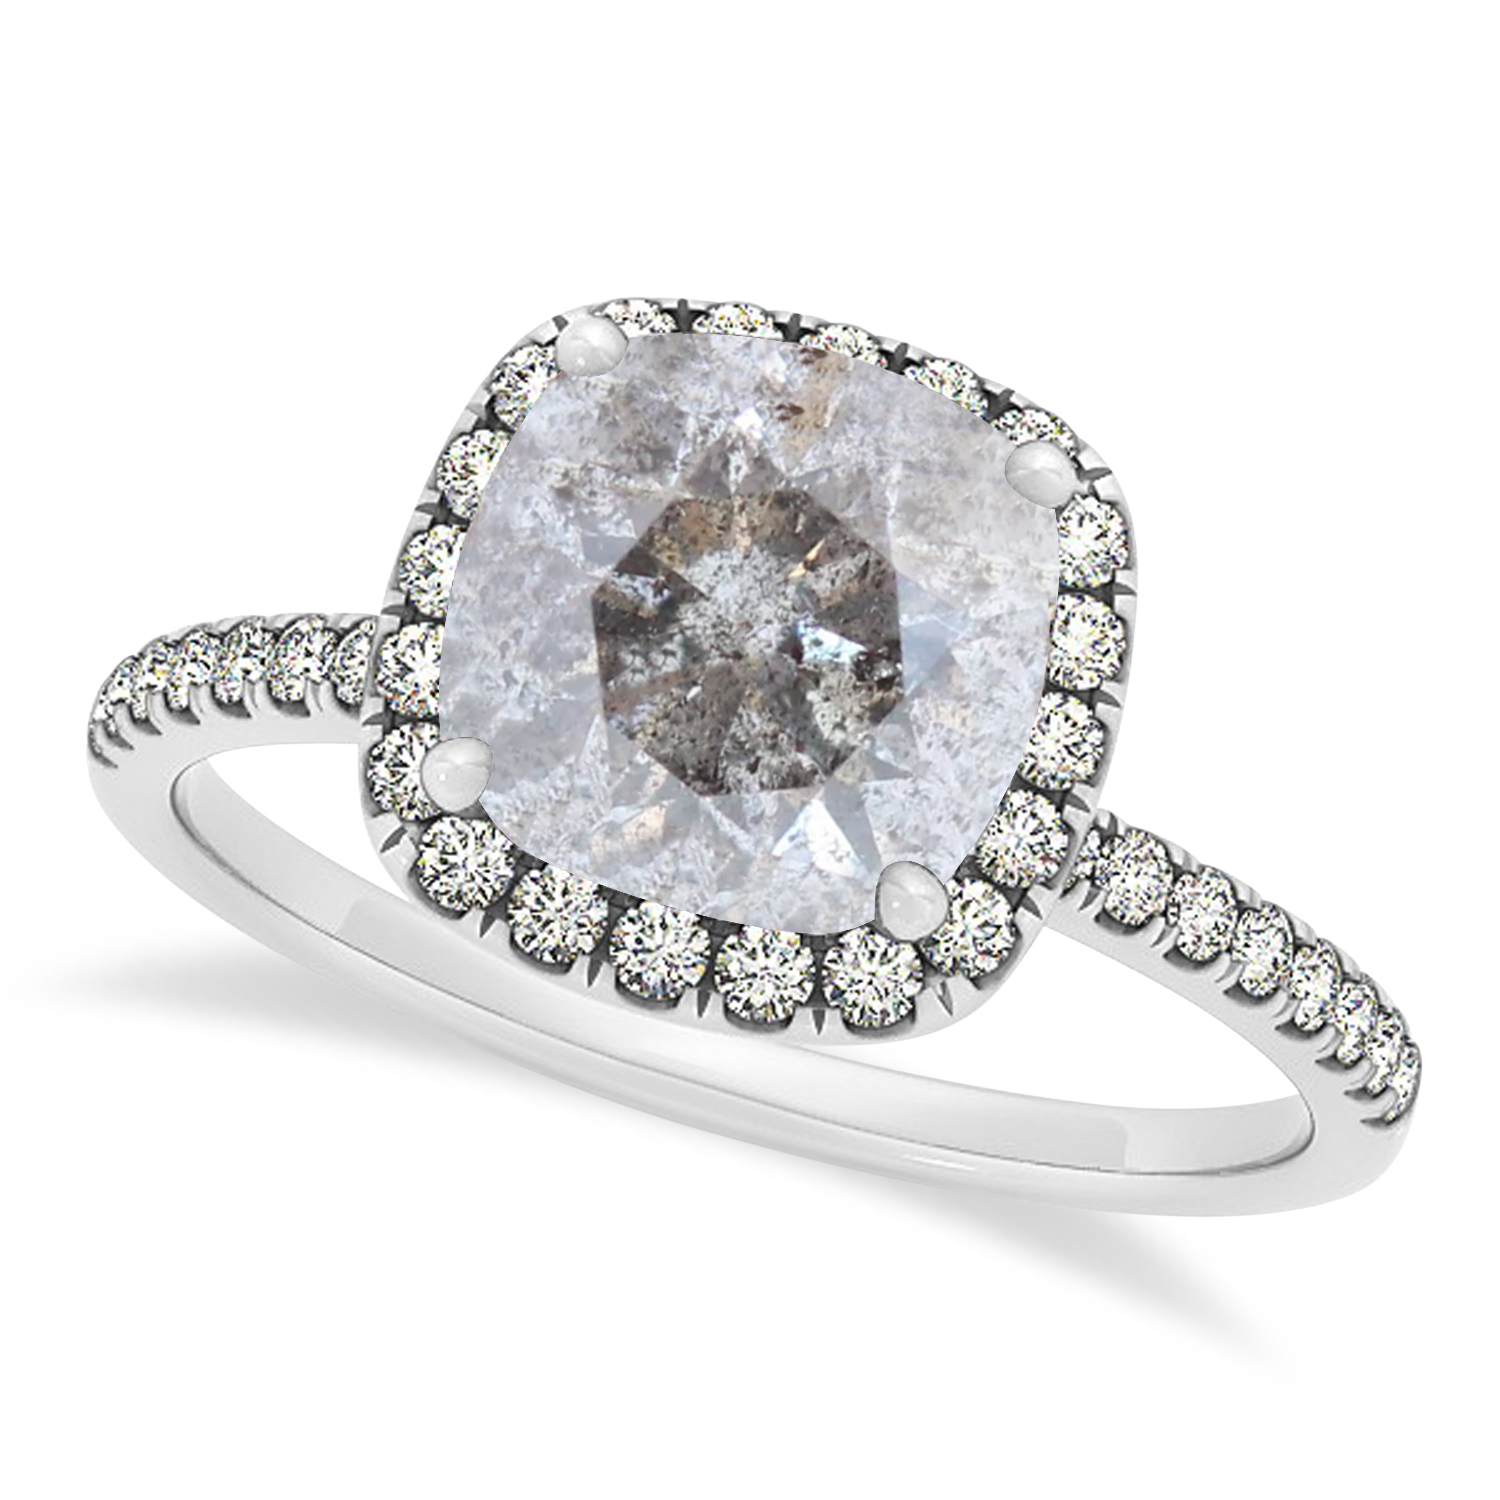 Cushion Salt & Pepper Diamond Halo Engagement Ring French Pave 14k W. Gold 0.70ct